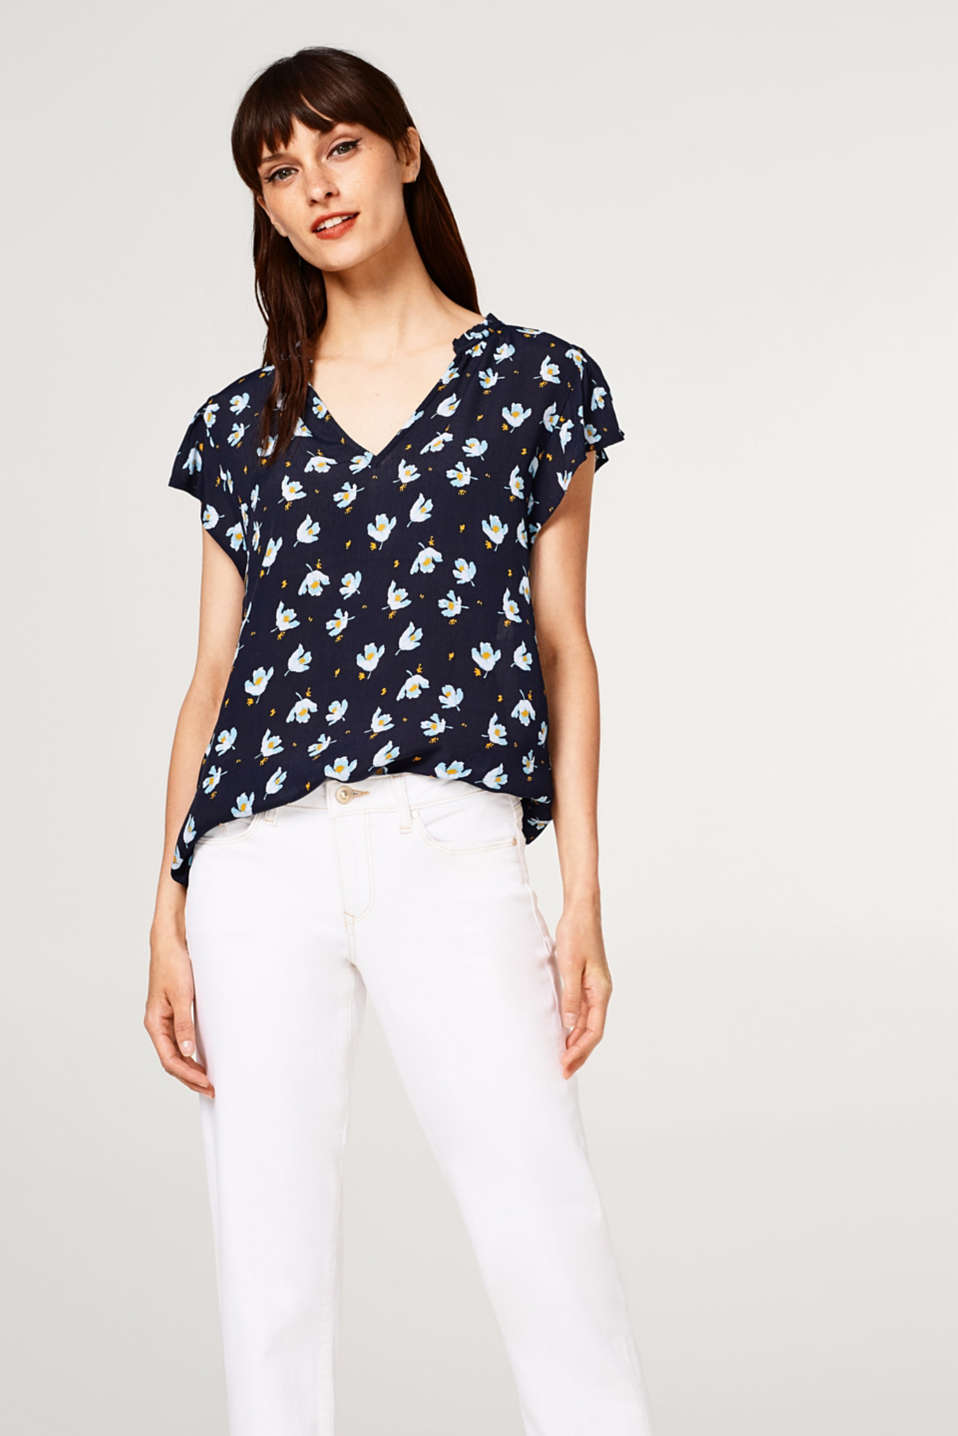 edc - Floral blouse top in crêpe with wing sleeves